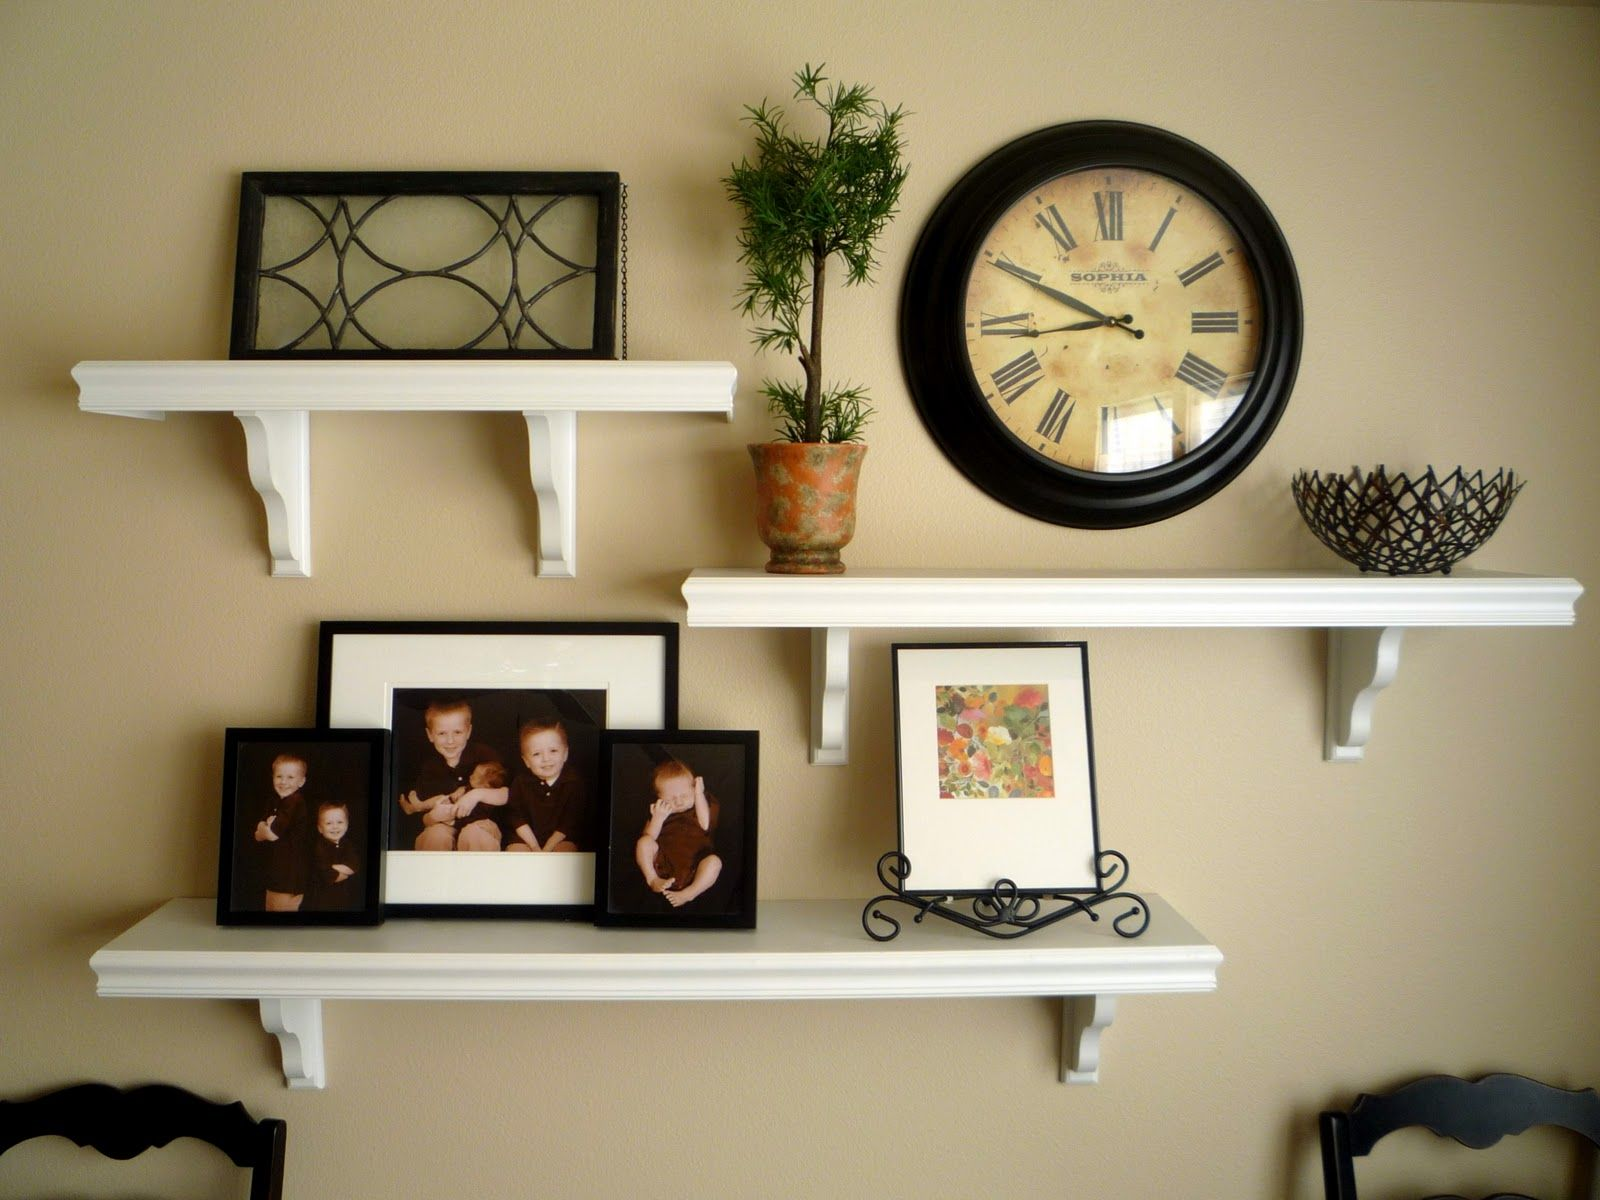 designer home accents. picture and shelves on wall together | it all started after being inspired by thrifty decor designer home accents ,